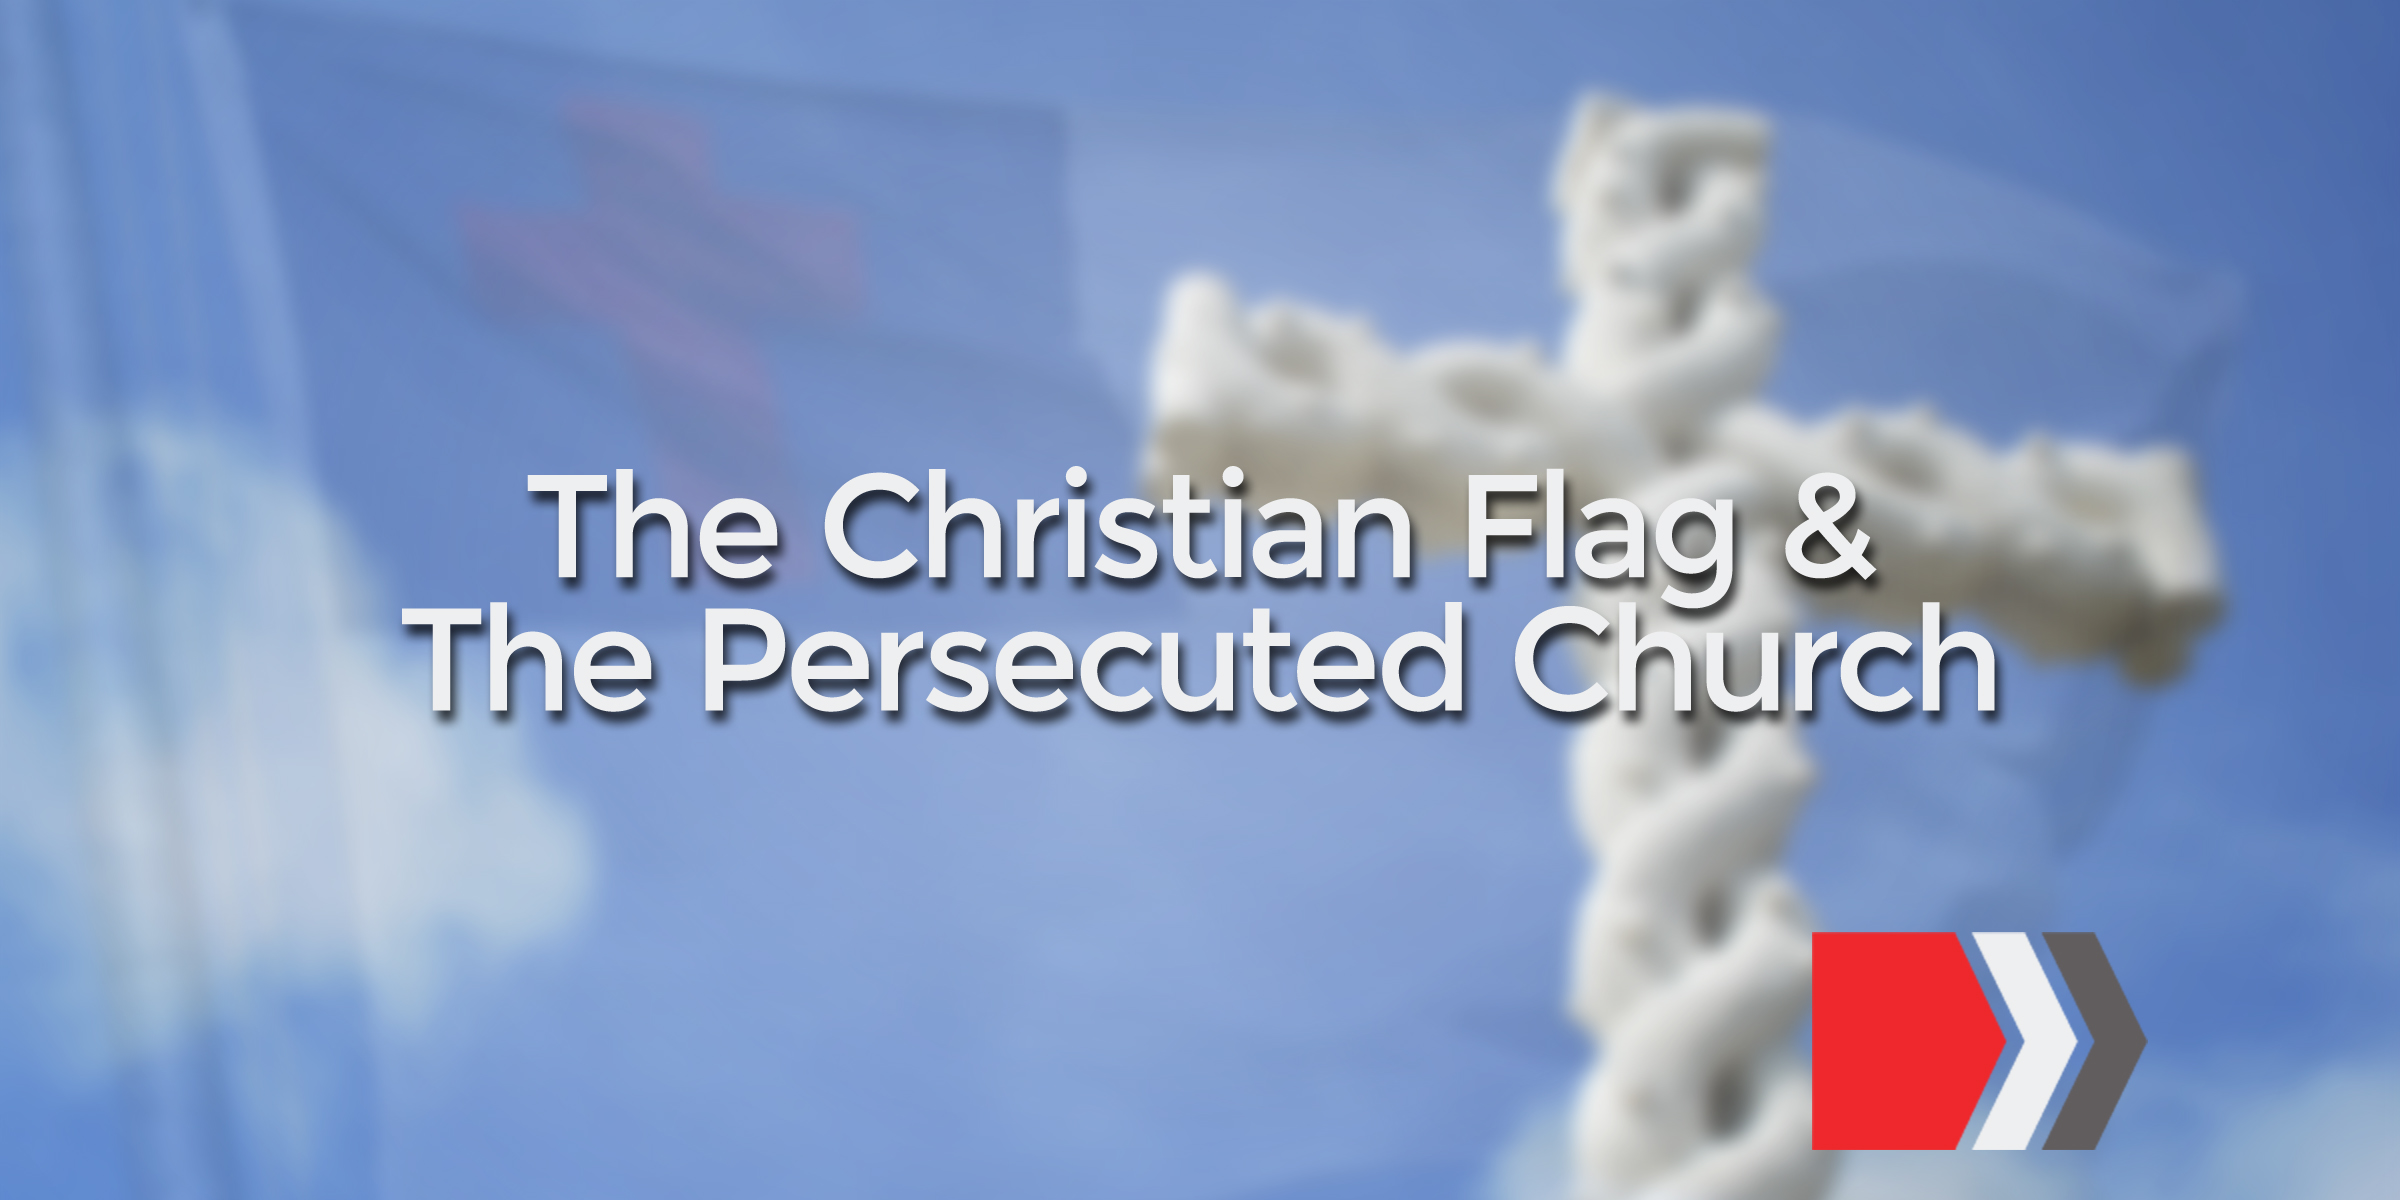 The Christian Flag & The Persecuted Church